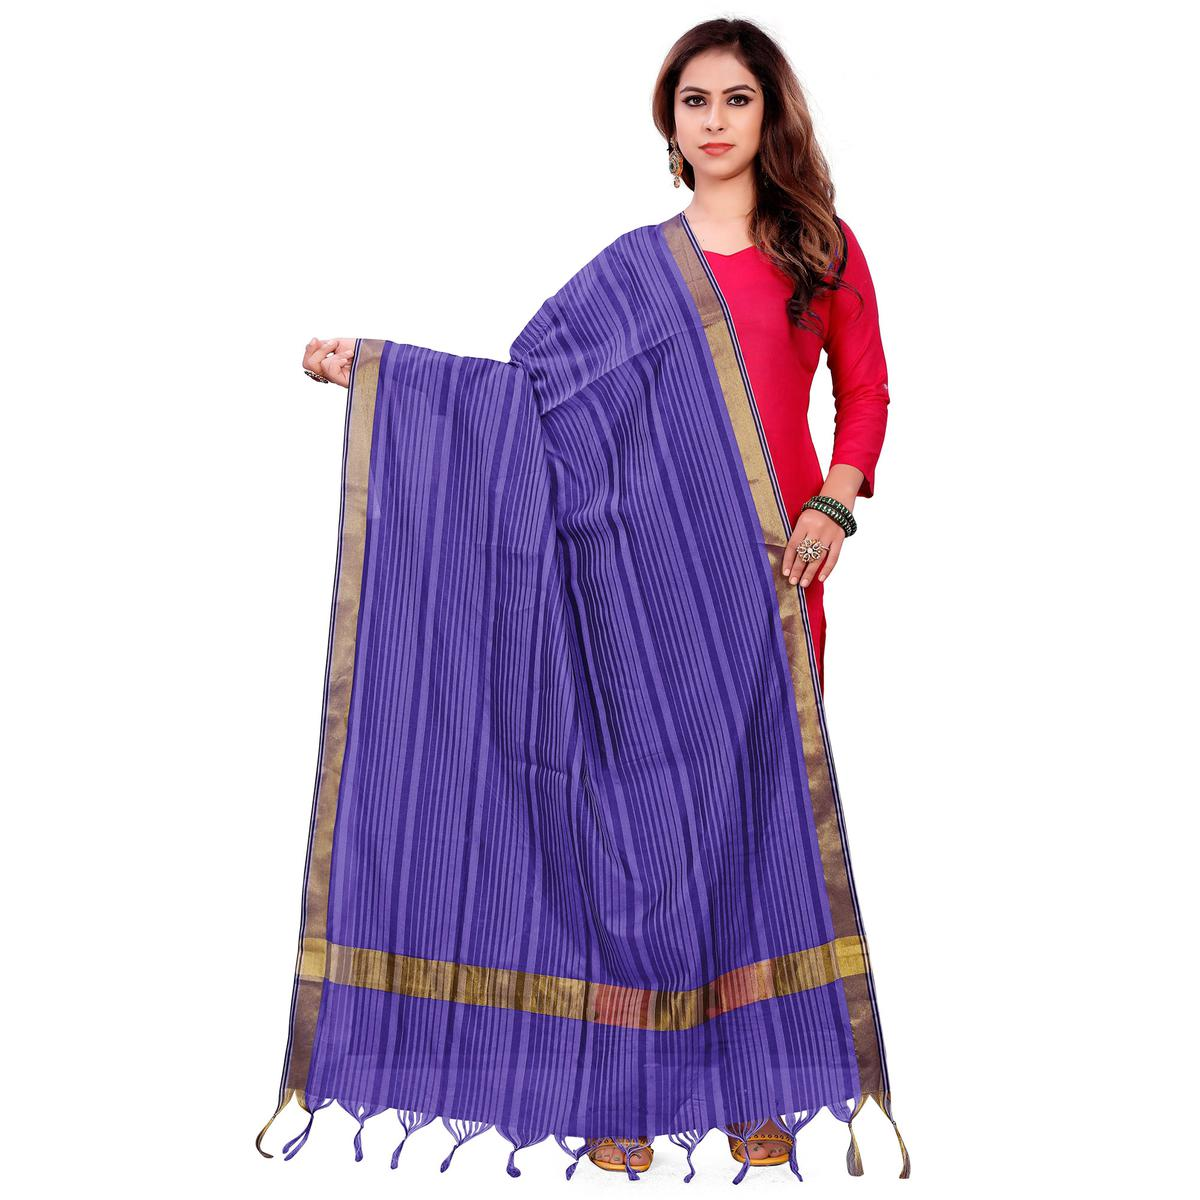 Captivating Royal Blue Colored Festive Wear Woven Silk Blend Dupatta With Tassels